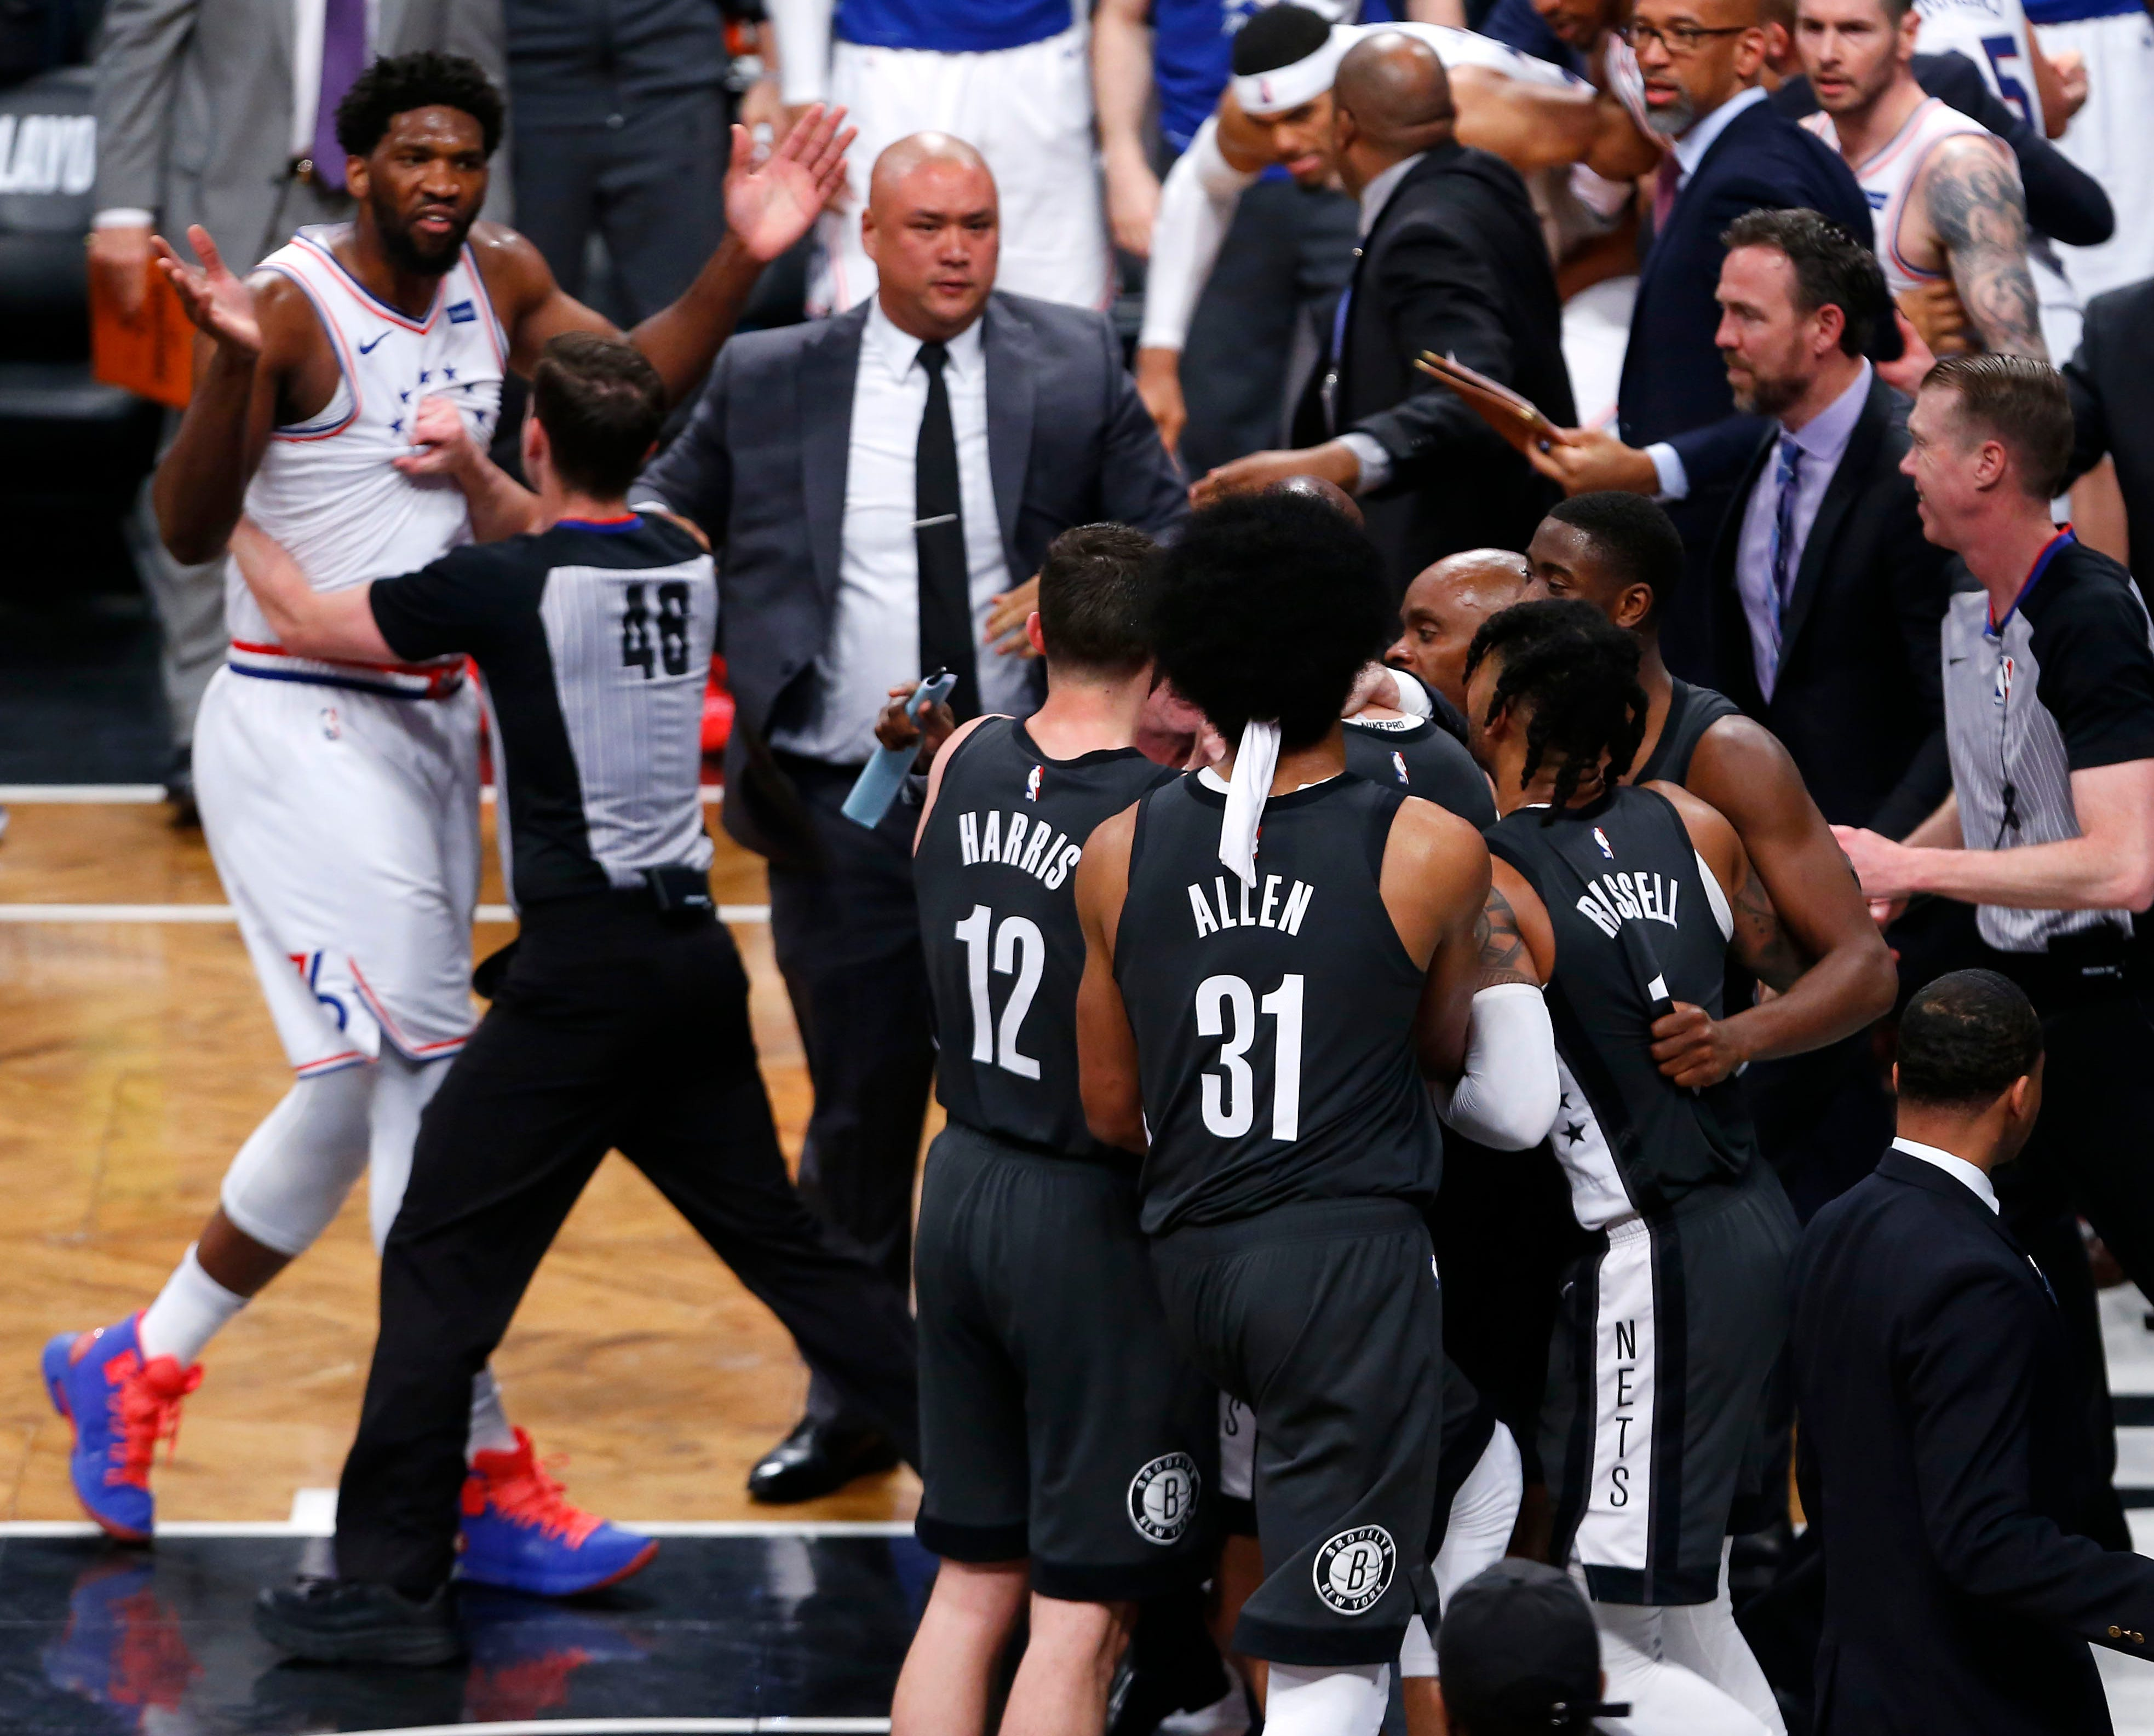 April 20: Sixers center Joel Embiid, left, is held back by referee Scott Foster from an altercation with the Nets during Game 4 in Brooklyn.